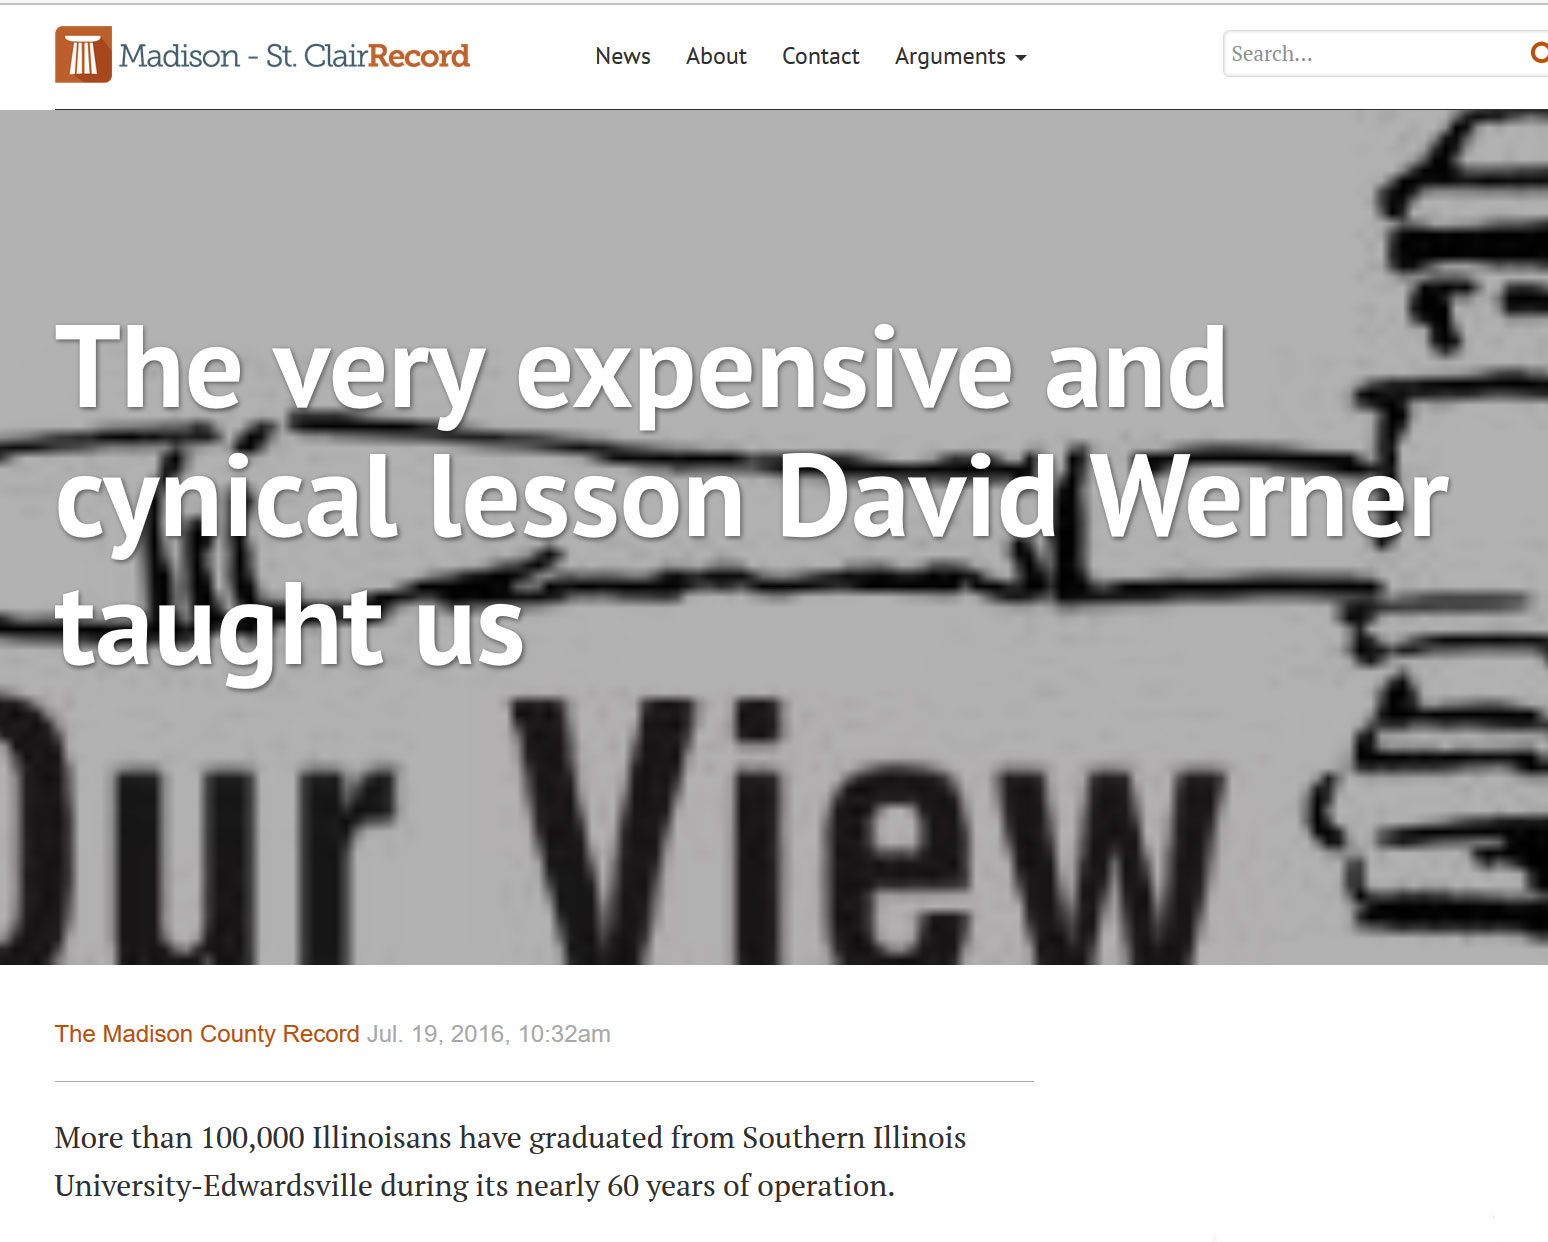 Madison County Record|The very expensive and cynical lesson David Werner taught us